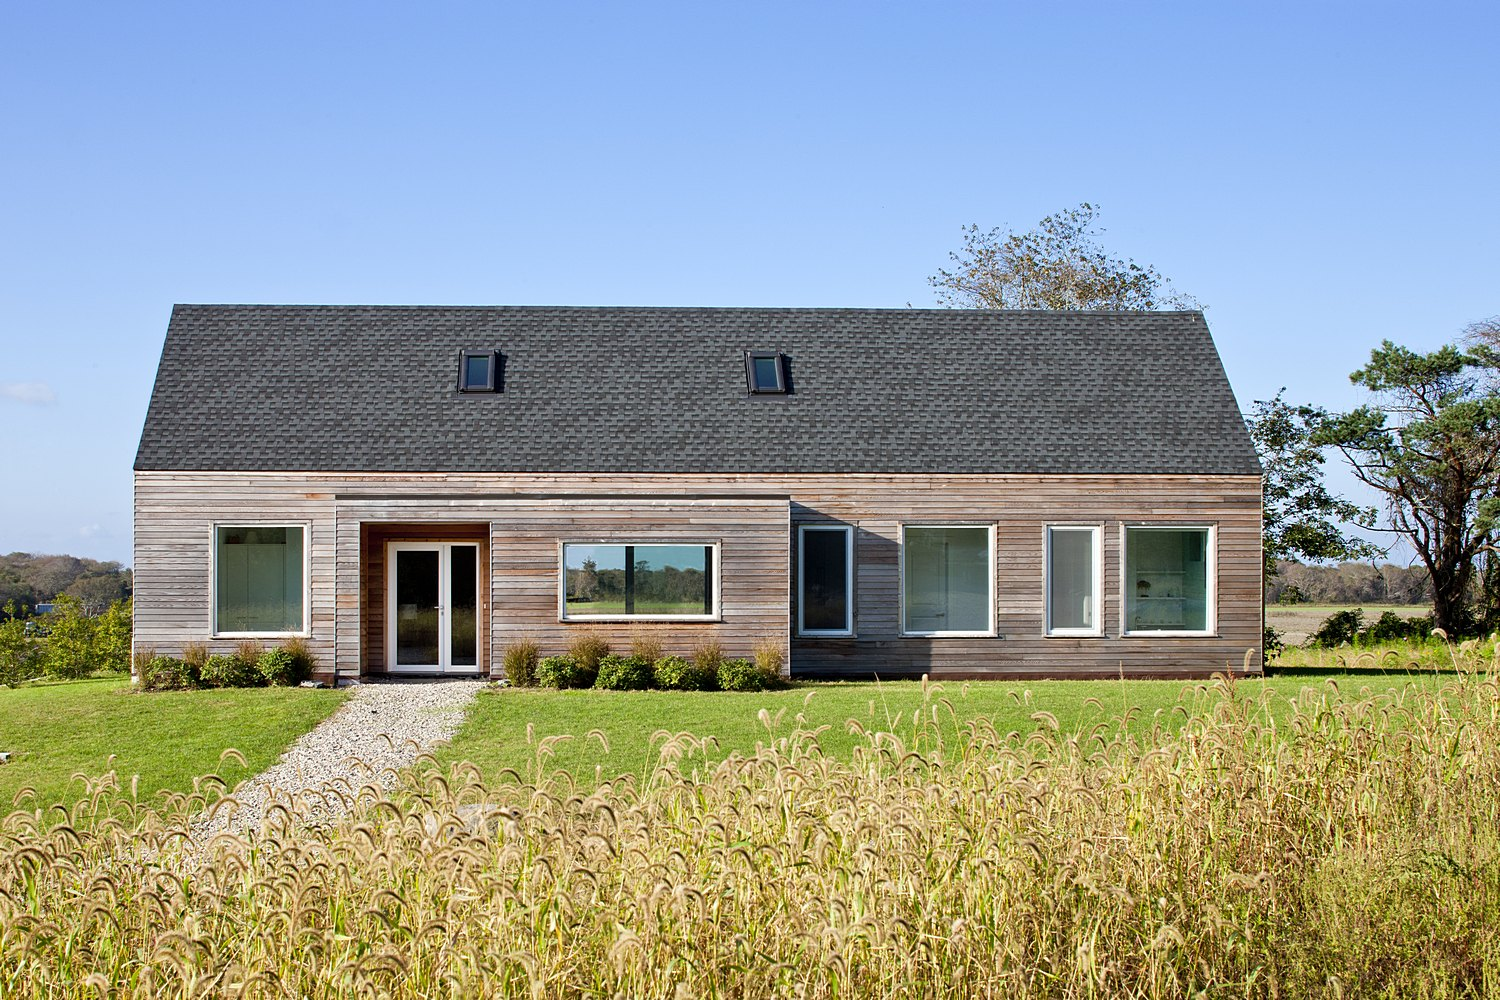 LEED gold certified home New England